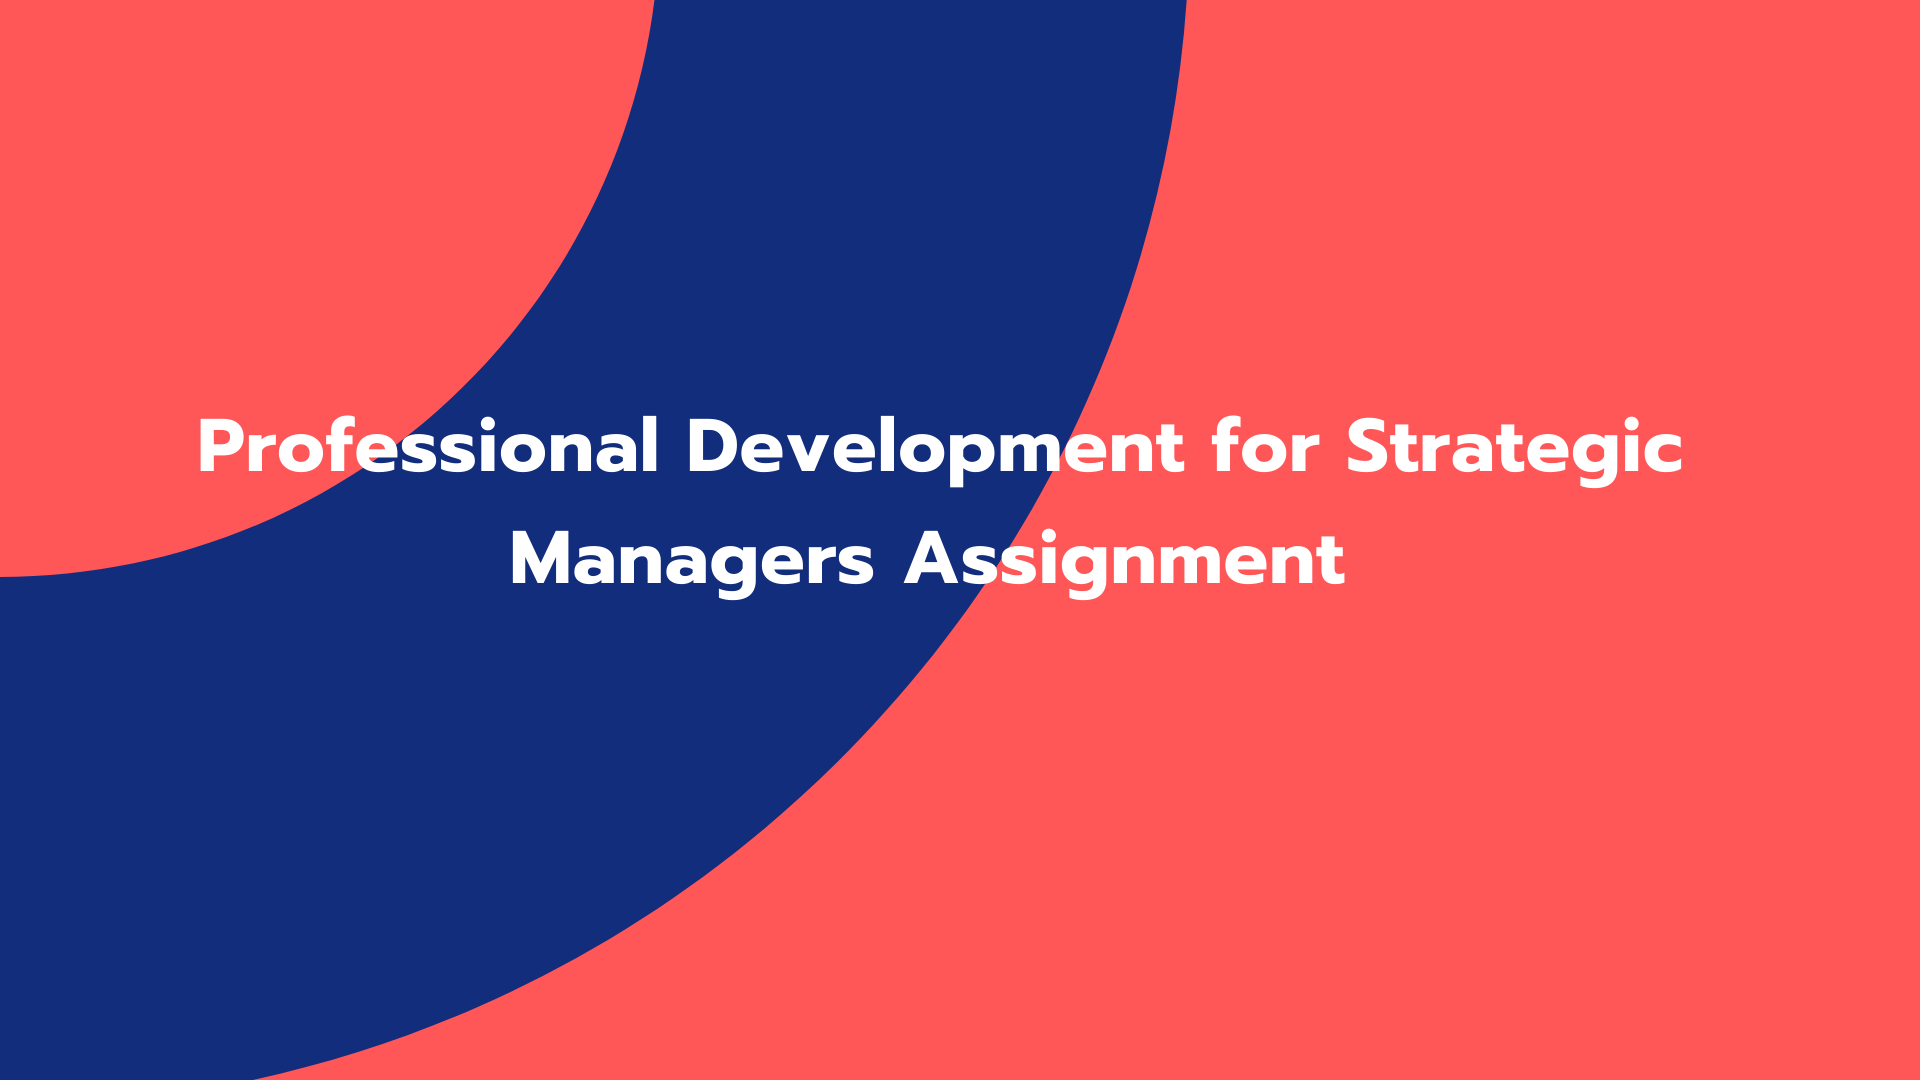 Professional Development for Strategic Managers Assignment